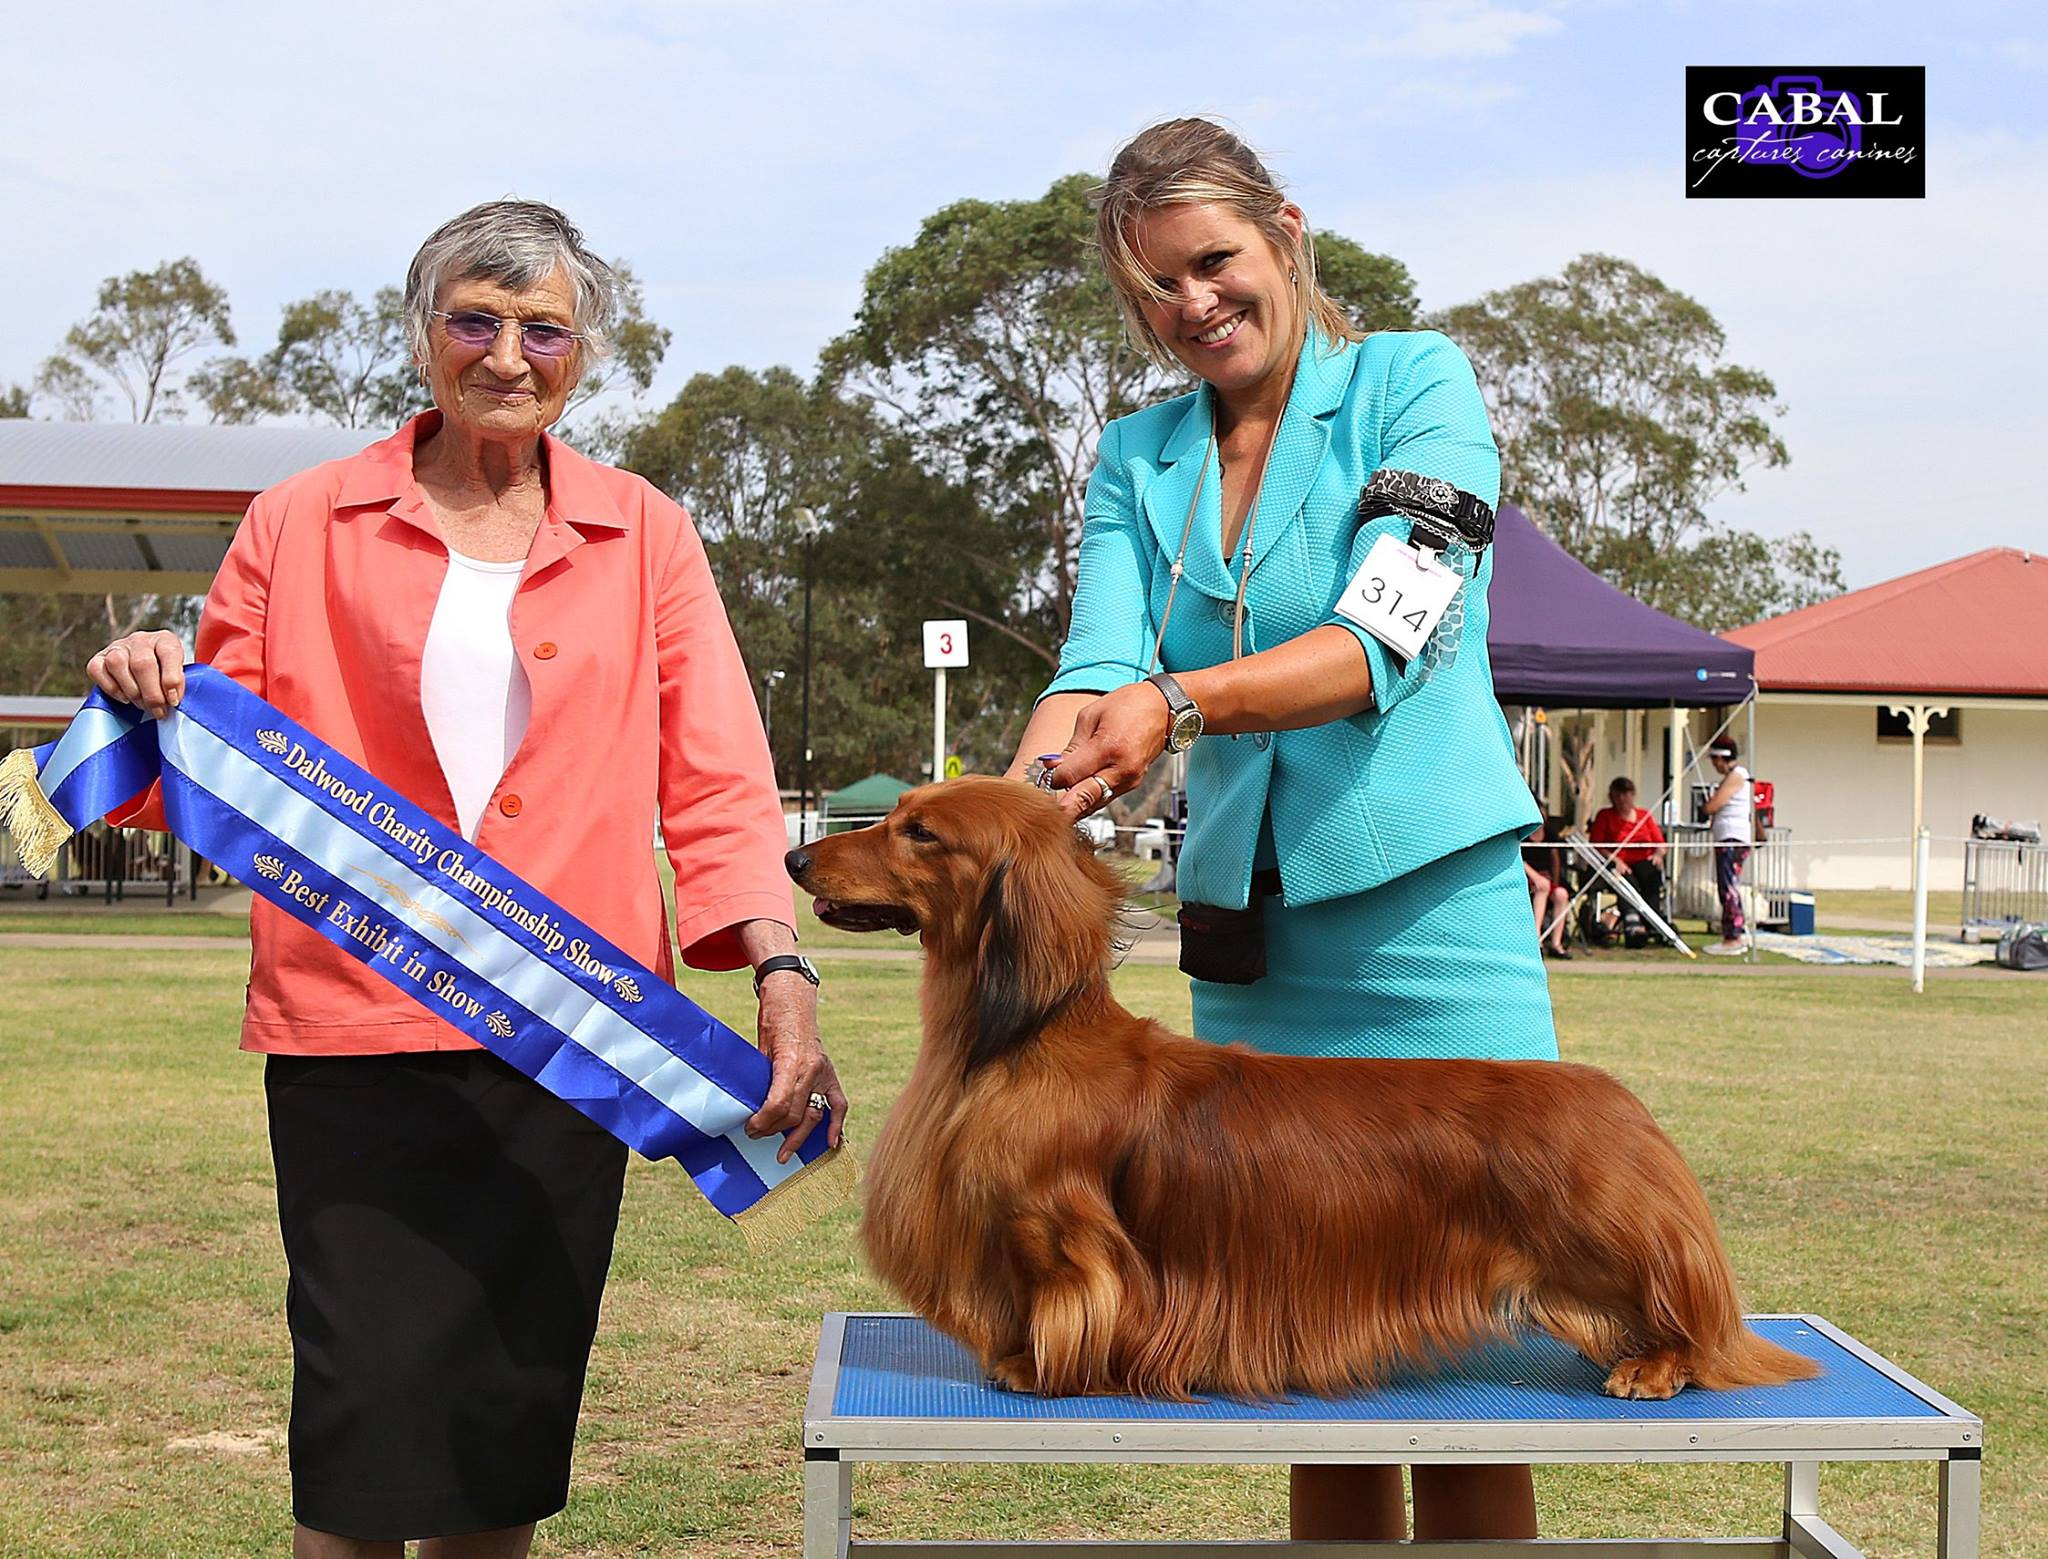 'Jimmy' wins back-to-back Best in Show at the Dalwood Children's Home Charity Show ('BLUE SHOW')!